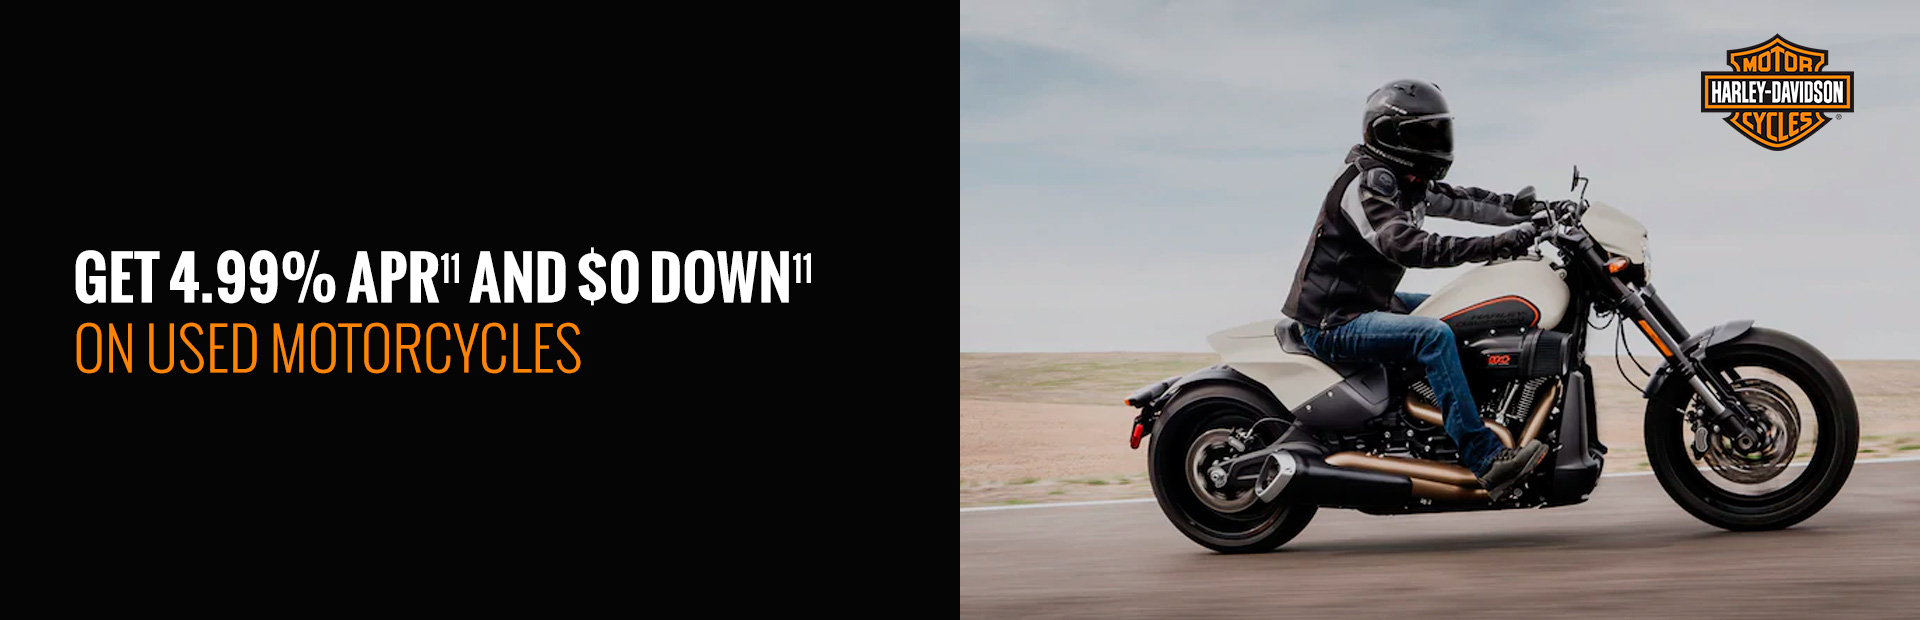 Harley-Davidson®: GET 4.99% APR AND $0 DOWN ON USED MOTORCYCLES